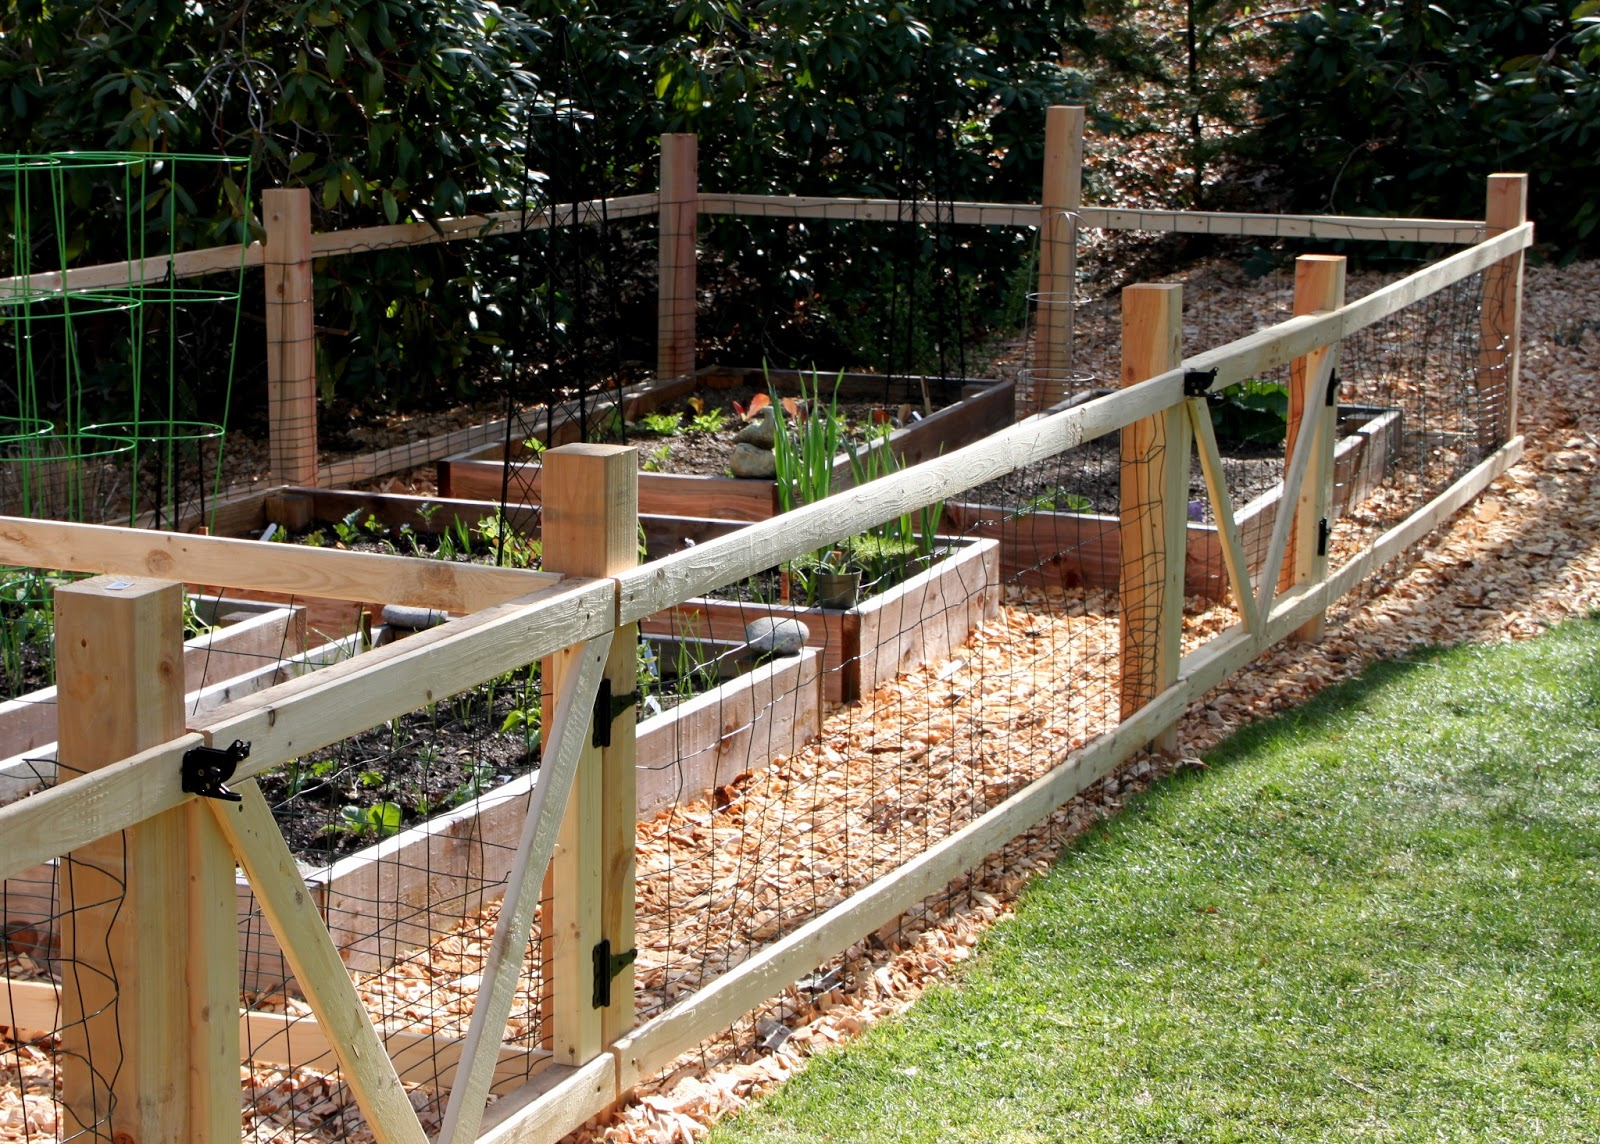 Tillys Nest: A Simple Garden Fence